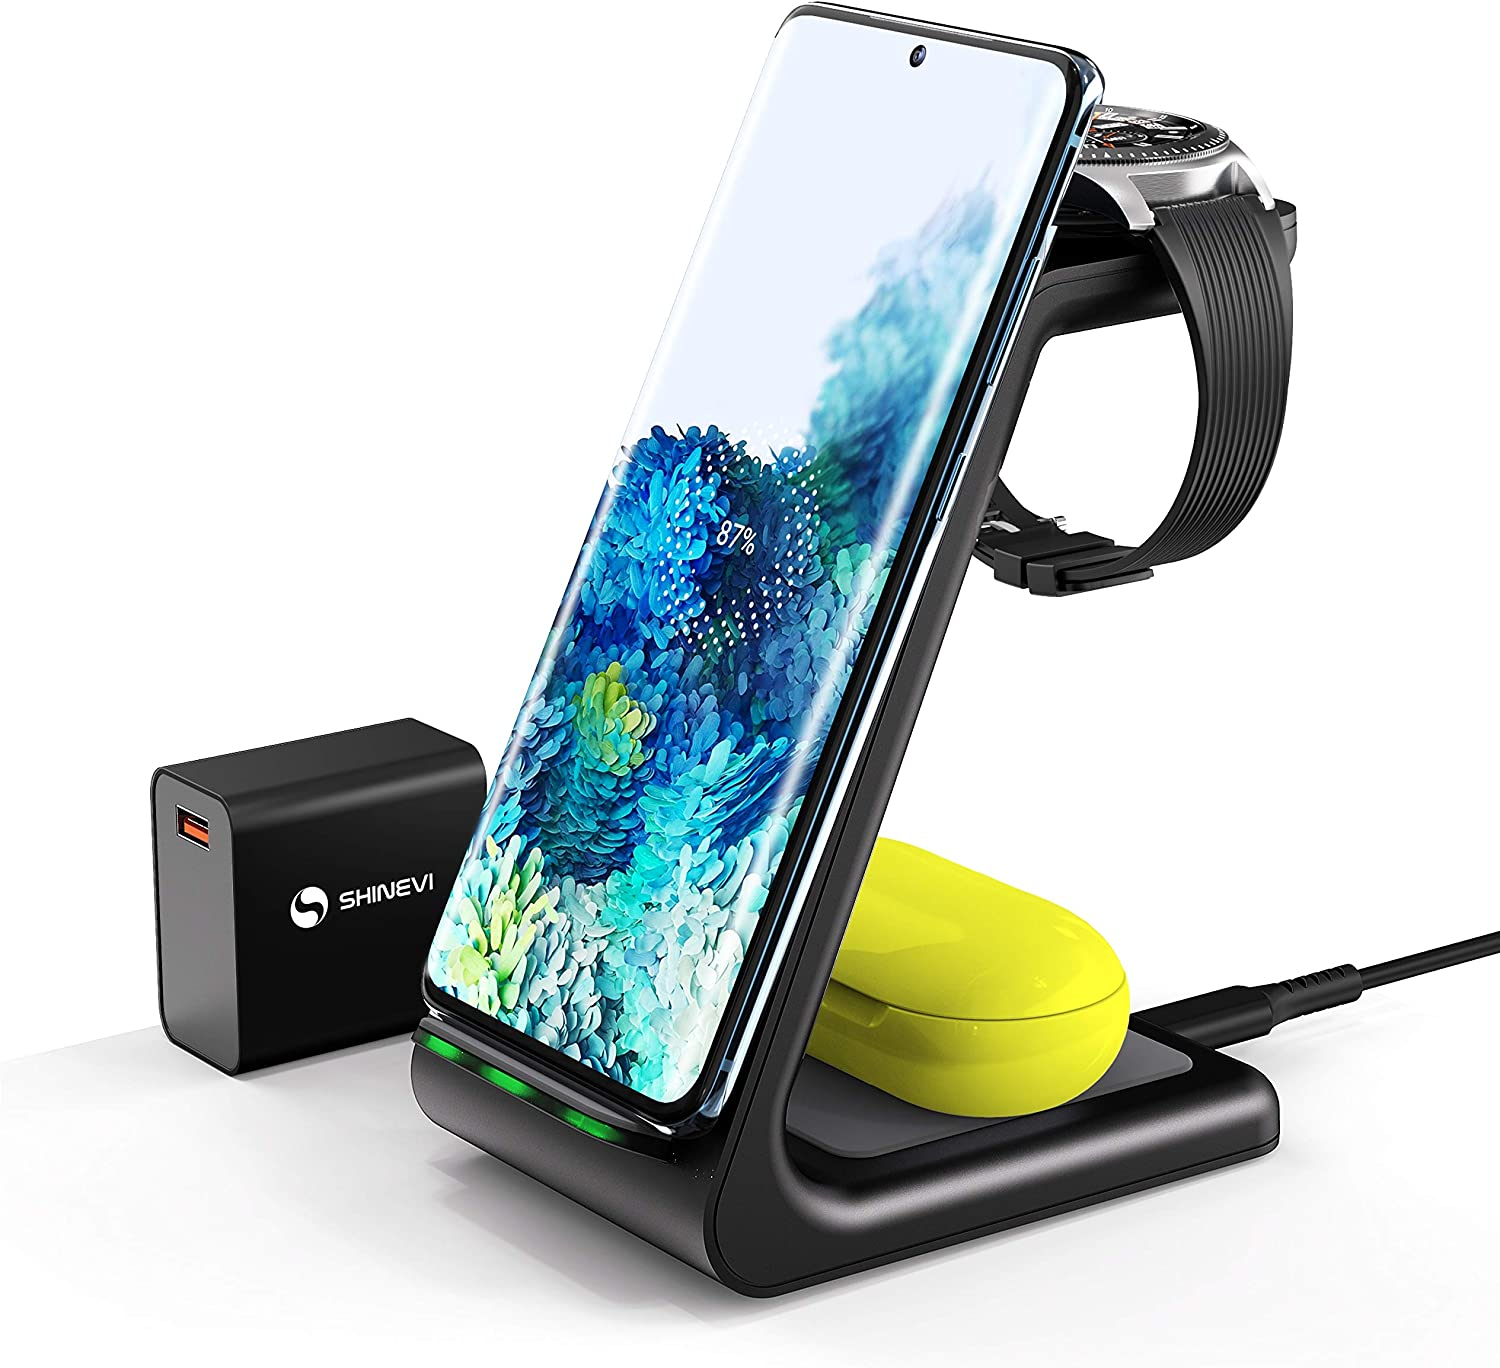 SHINEVI Wireless Charger 3 in 1 Charger Stand Qi-Certified 10W Fast Charging Station Compatible with iPhone 11 Series/XS/XR/X/8/8 Plus,Samsung Galaxy S20 S10 S9 S8,Airpods Pro,Galaxy Watches and Buds